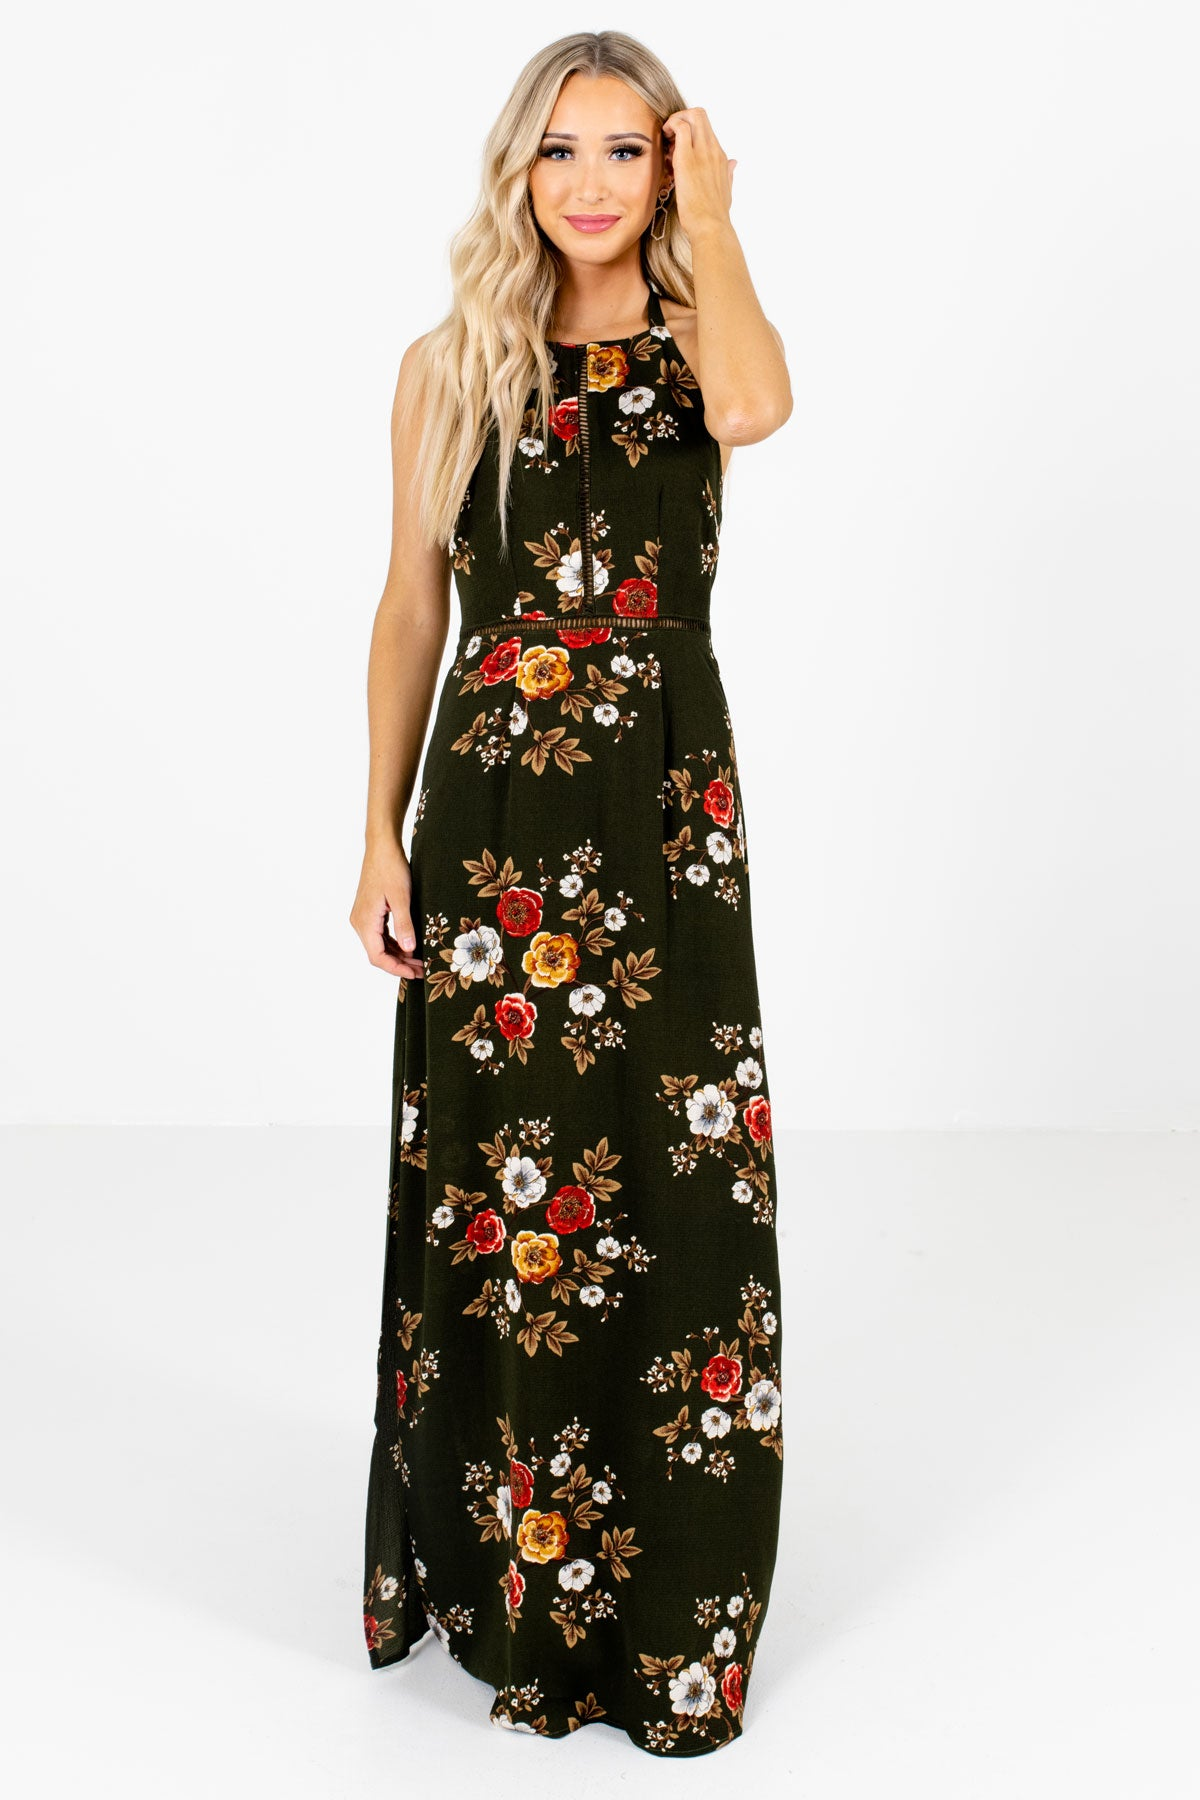 Dark Olive Green Multicolored Floral Patterned Boutique Maxi Dresses for Women